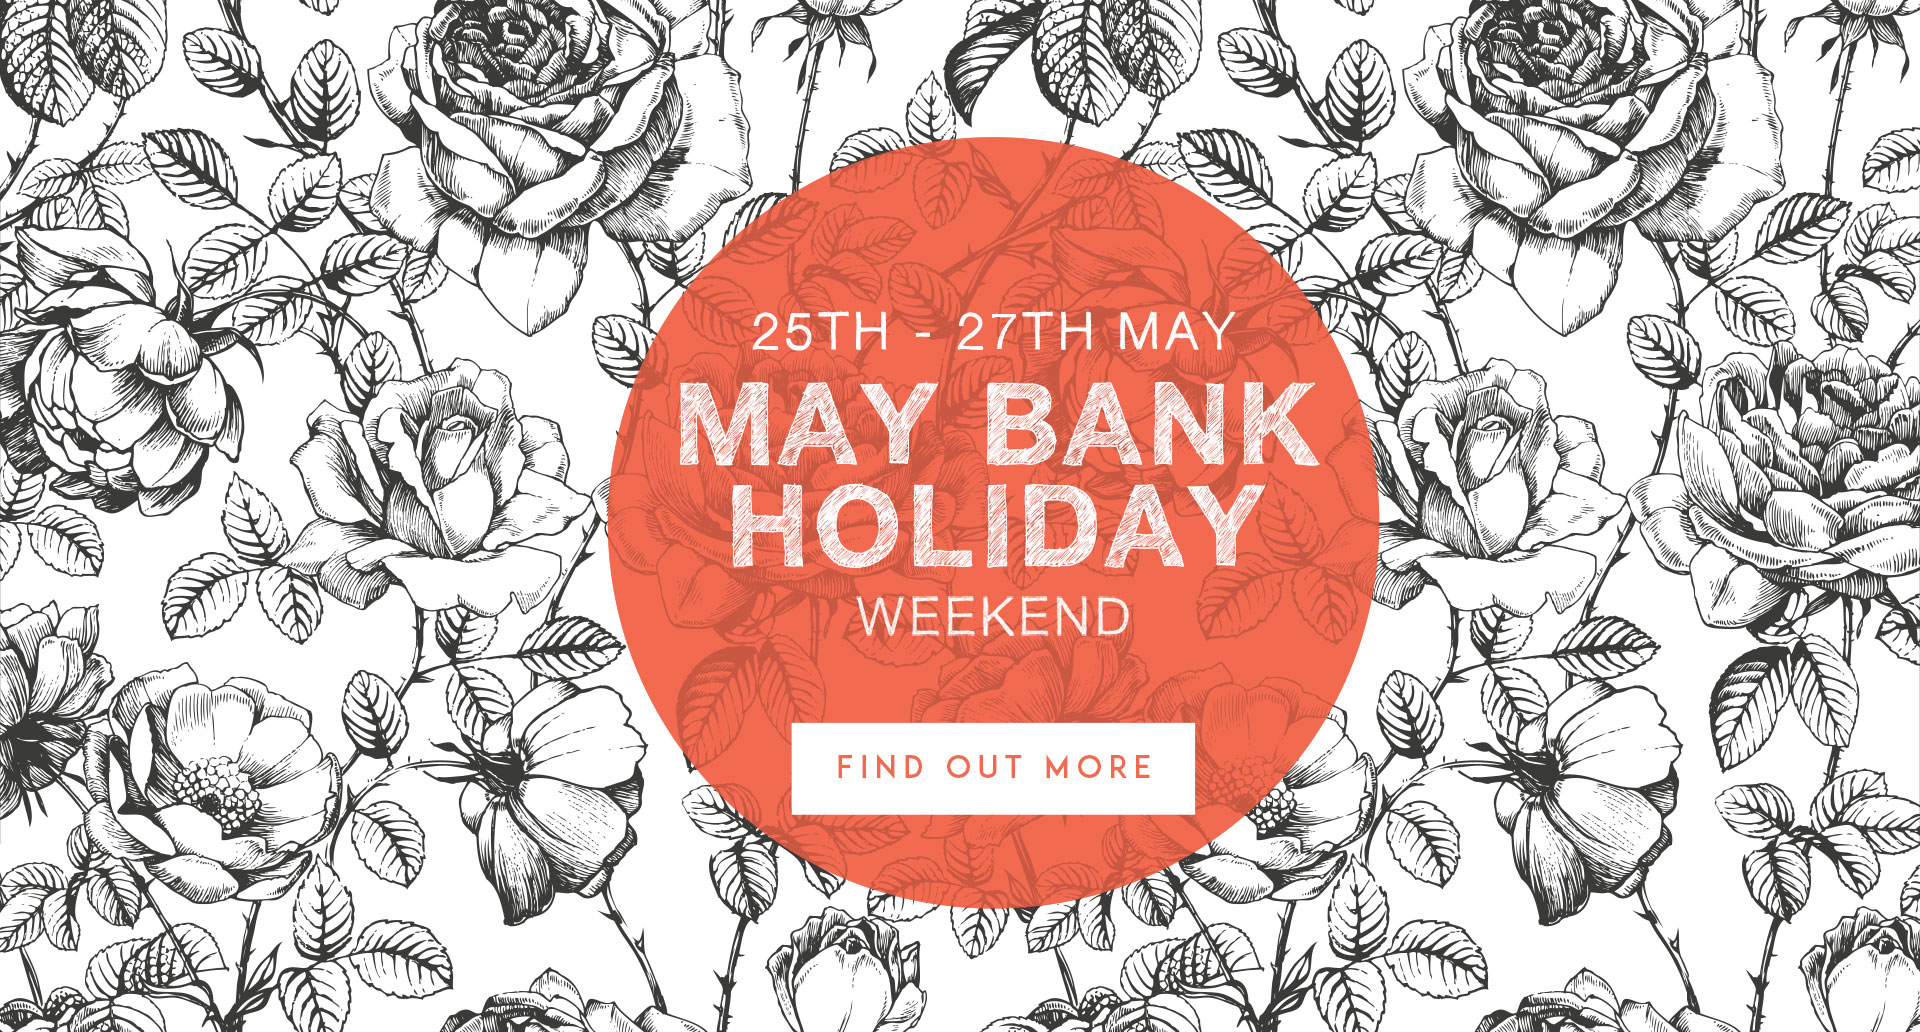 May Bank Holiday at Dewdrop